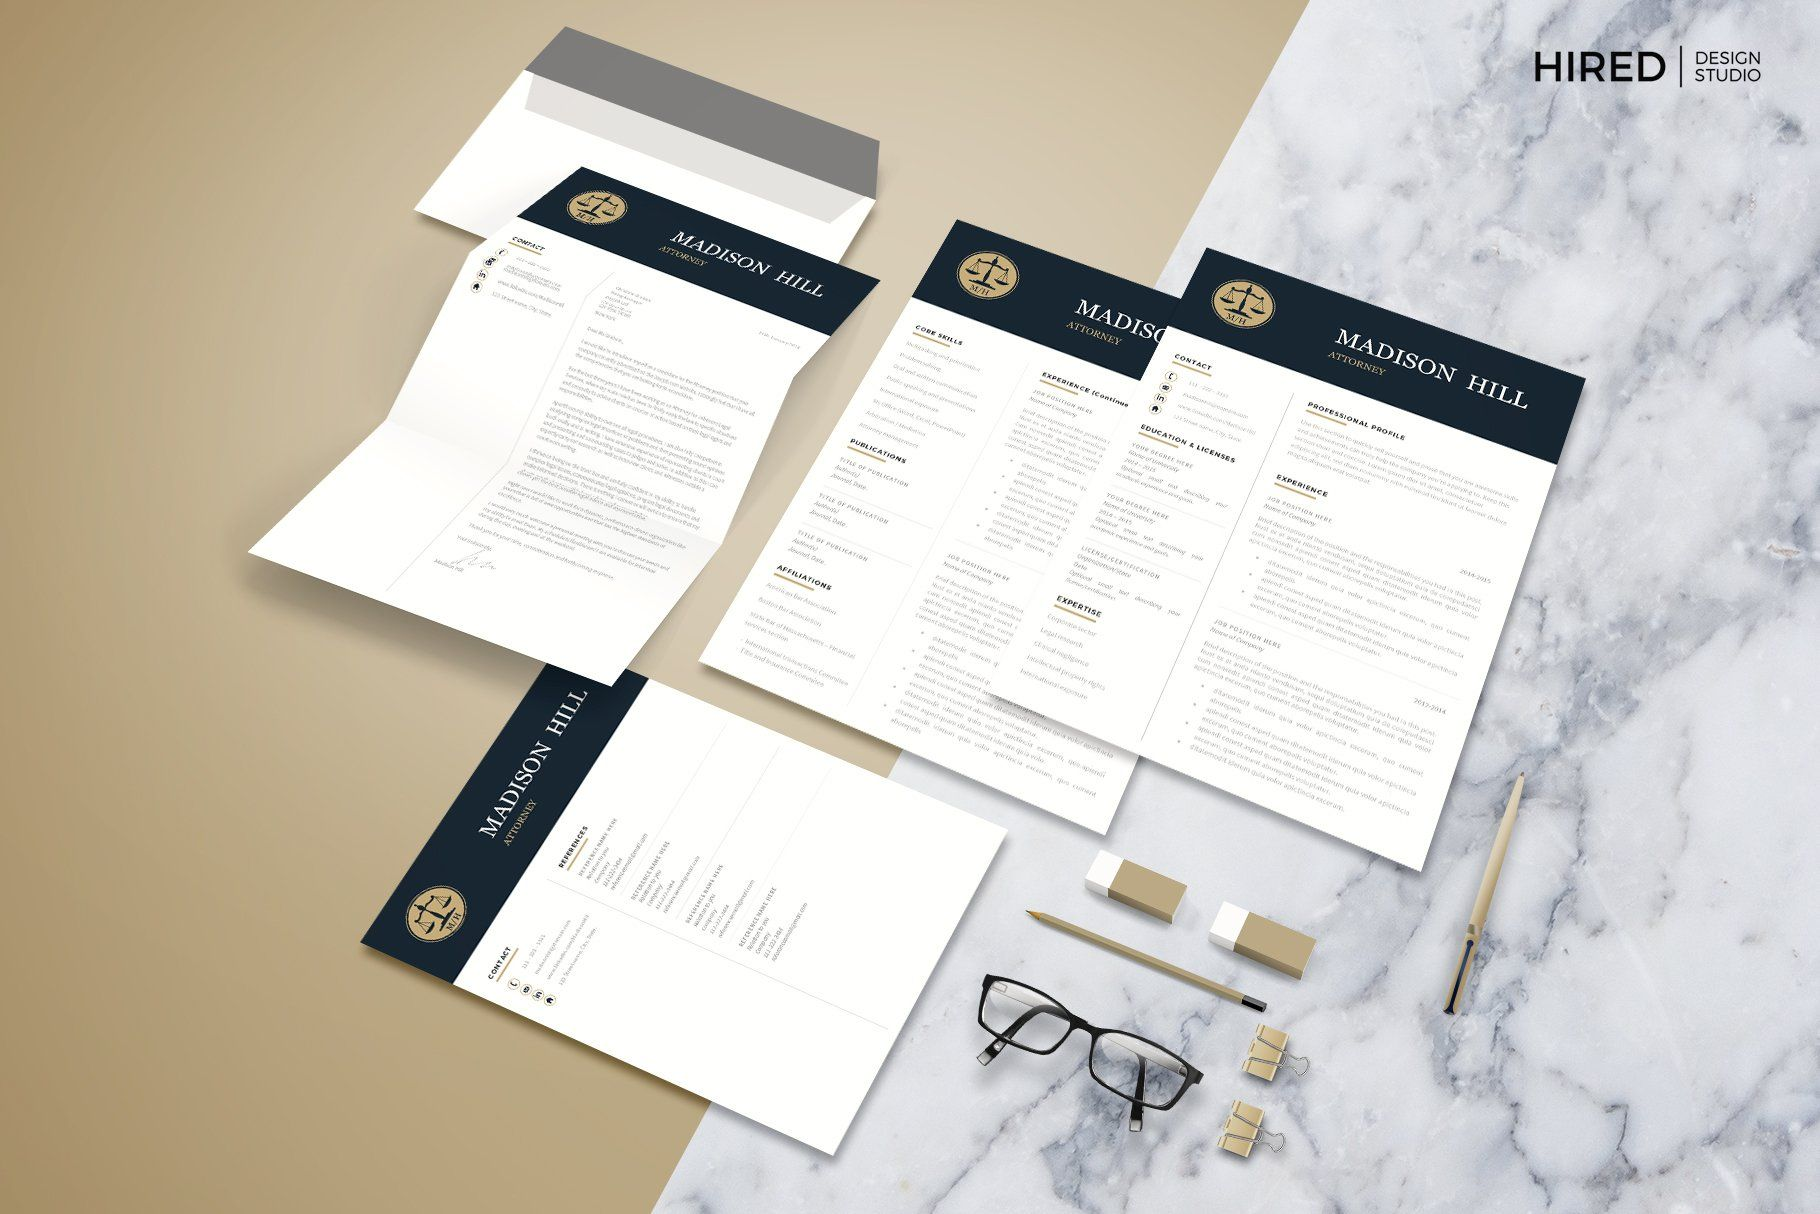 Attorney resume template lawyer cv by hired design studio